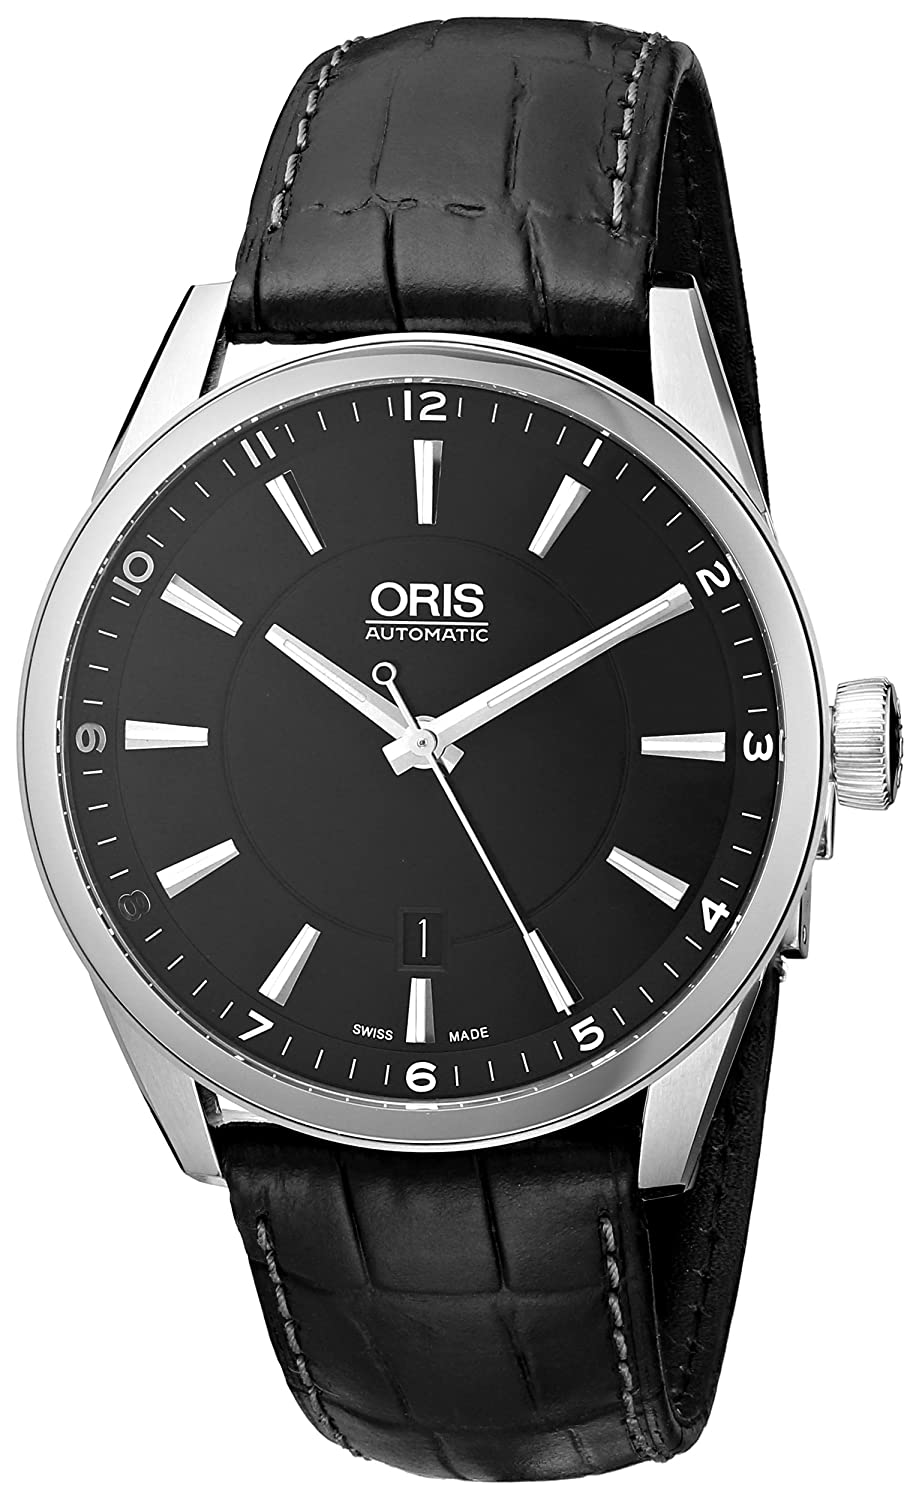 Orisメンズ73376424054 – 0752181 FC Leather Synthetic with Black Dial Watch B007PP4P7W